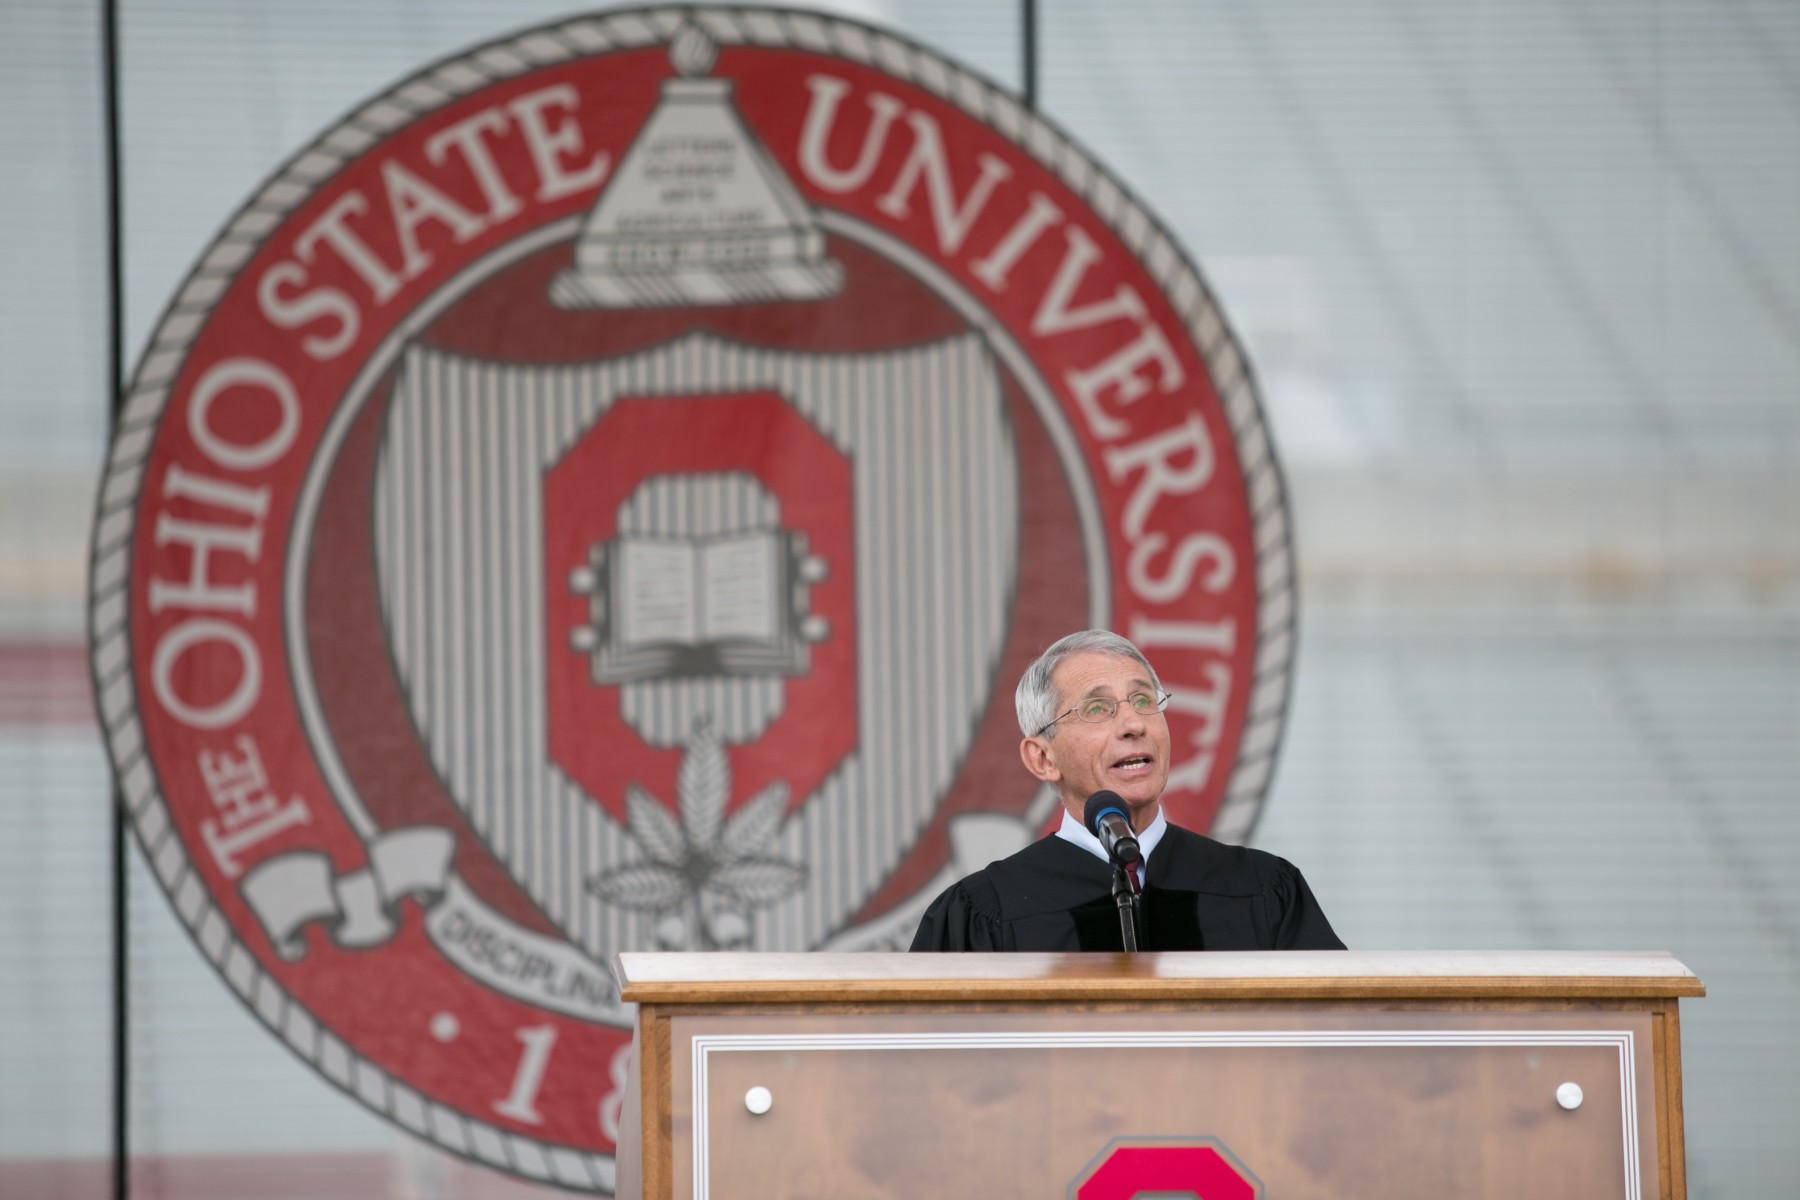 Anthony Fauci, director of the National Institute of Allergy and Infectious Diseases, was the spring commencement speaker in 2016.